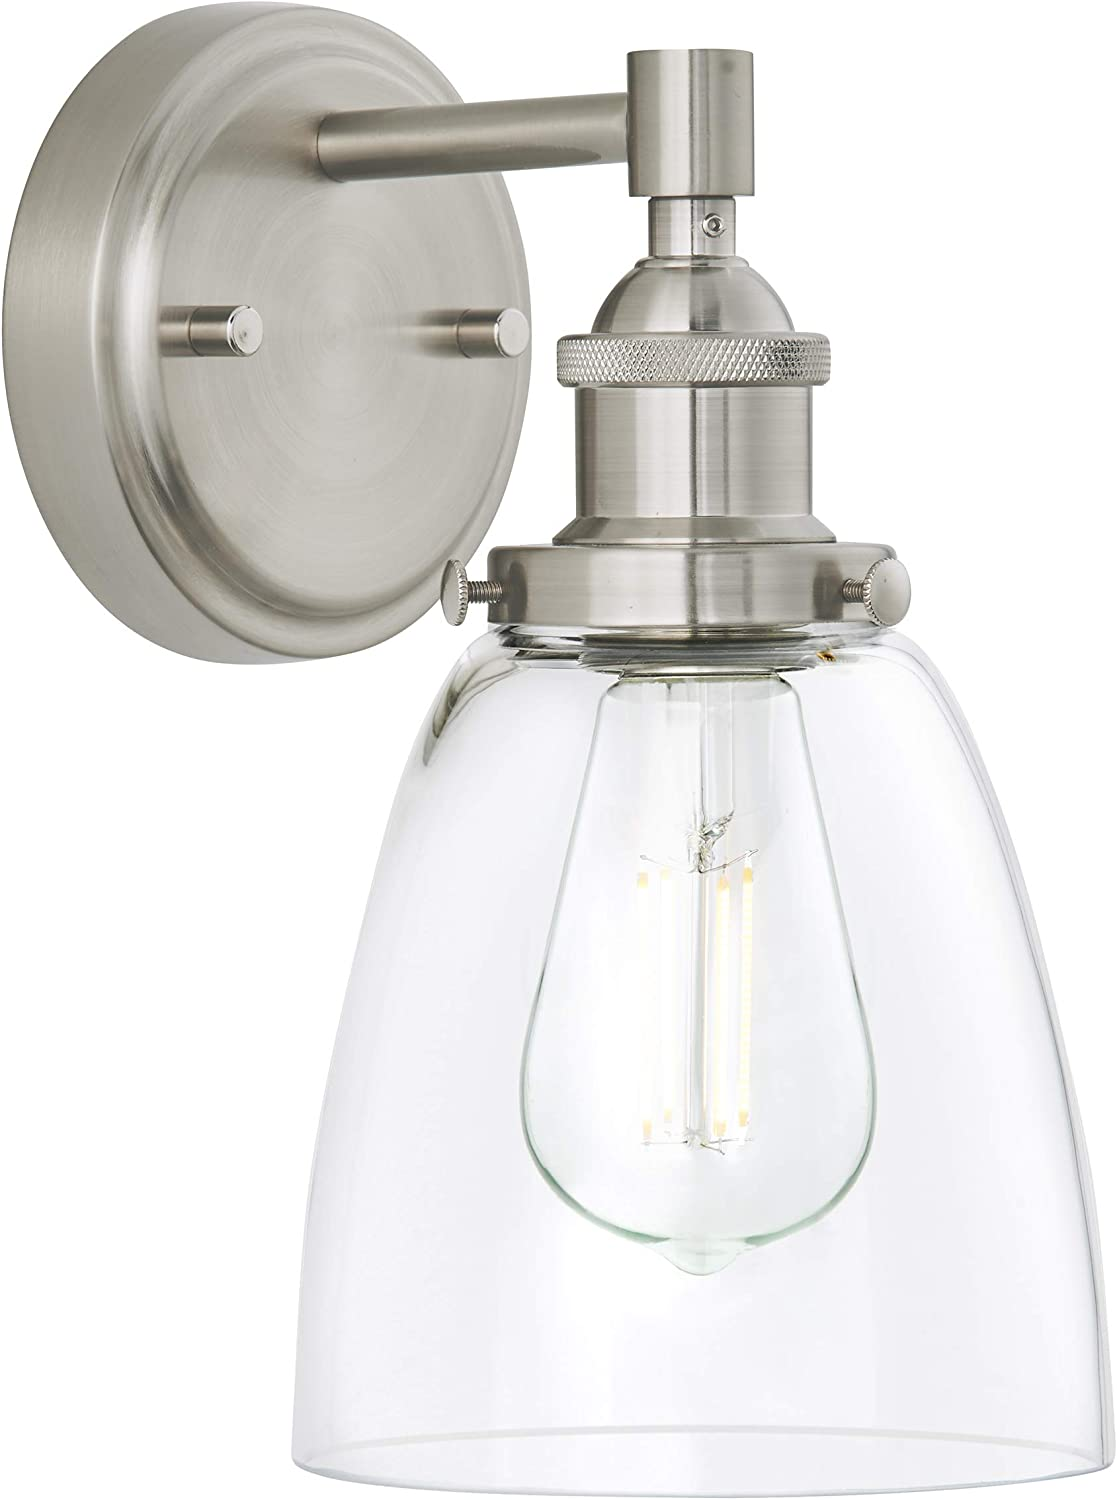 Fiorentino Led Industrial Wall Sconce Brushed Nickel W Clear Glass Linea Di Liara Ll Wl582 Bn